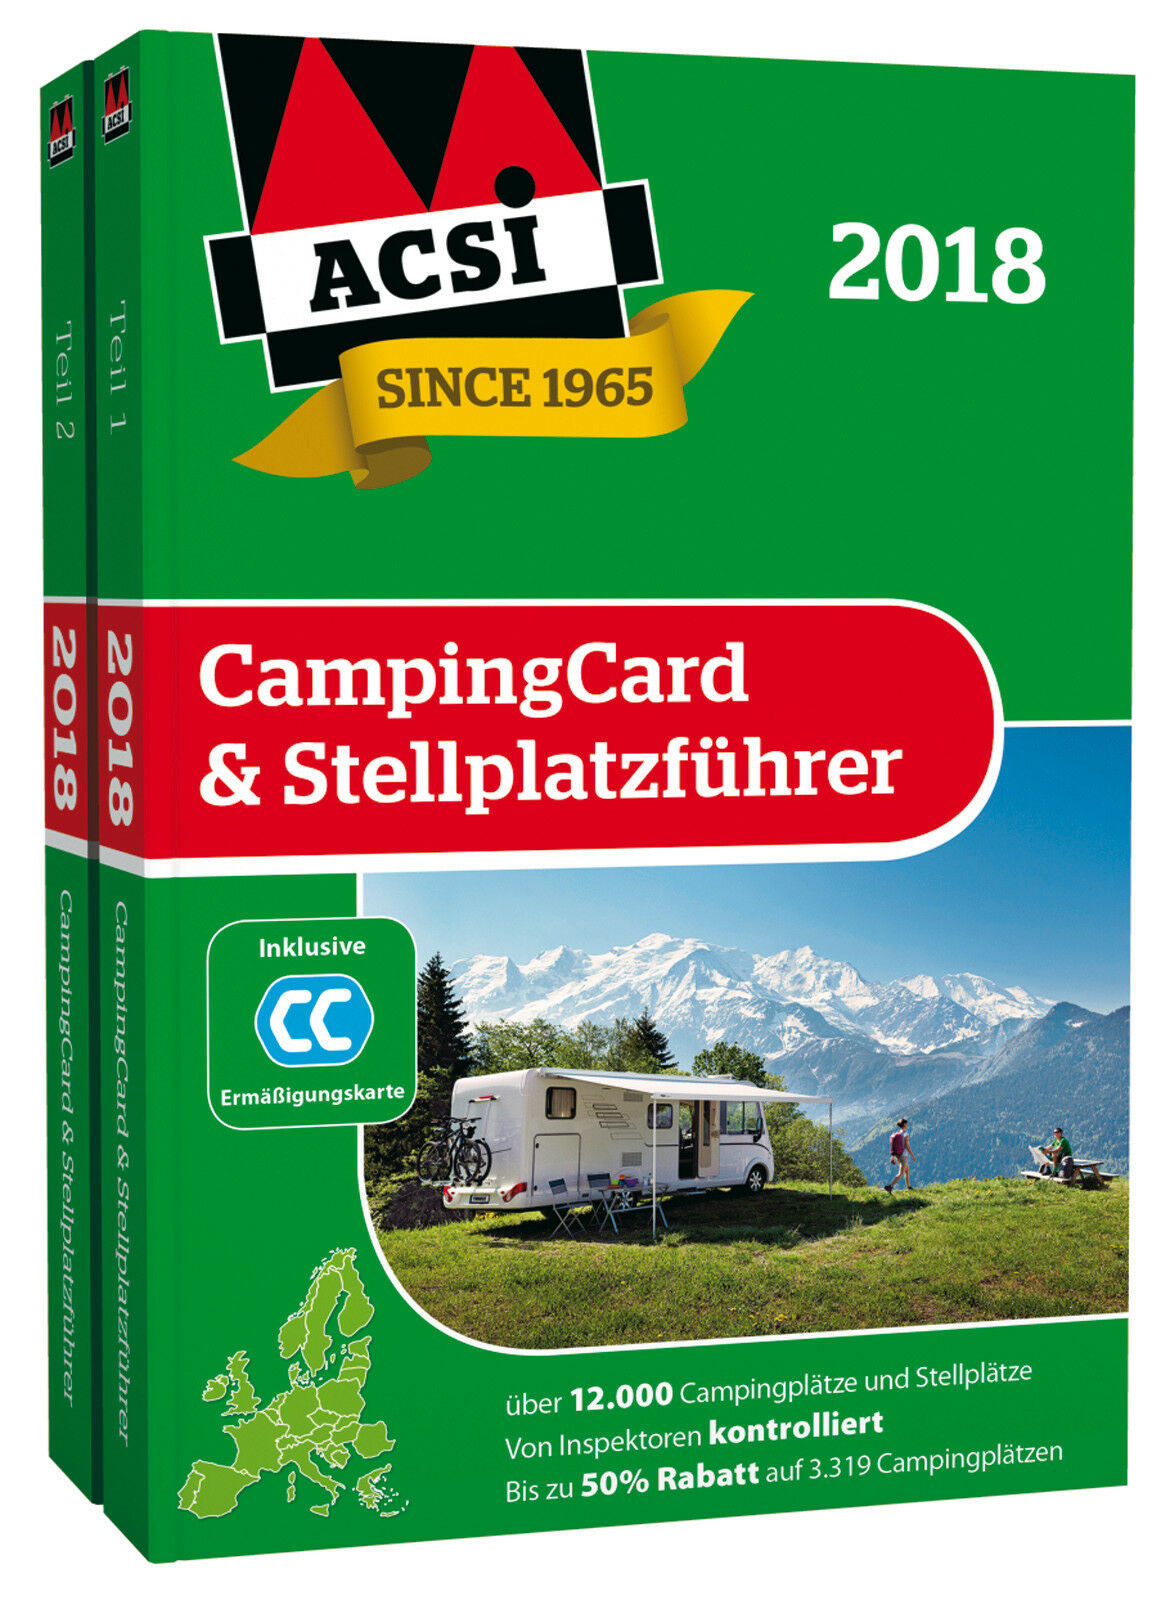 acsi campingcard stellplatzf hrer 2018 inklusive. Black Bedroom Furniture Sets. Home Design Ideas